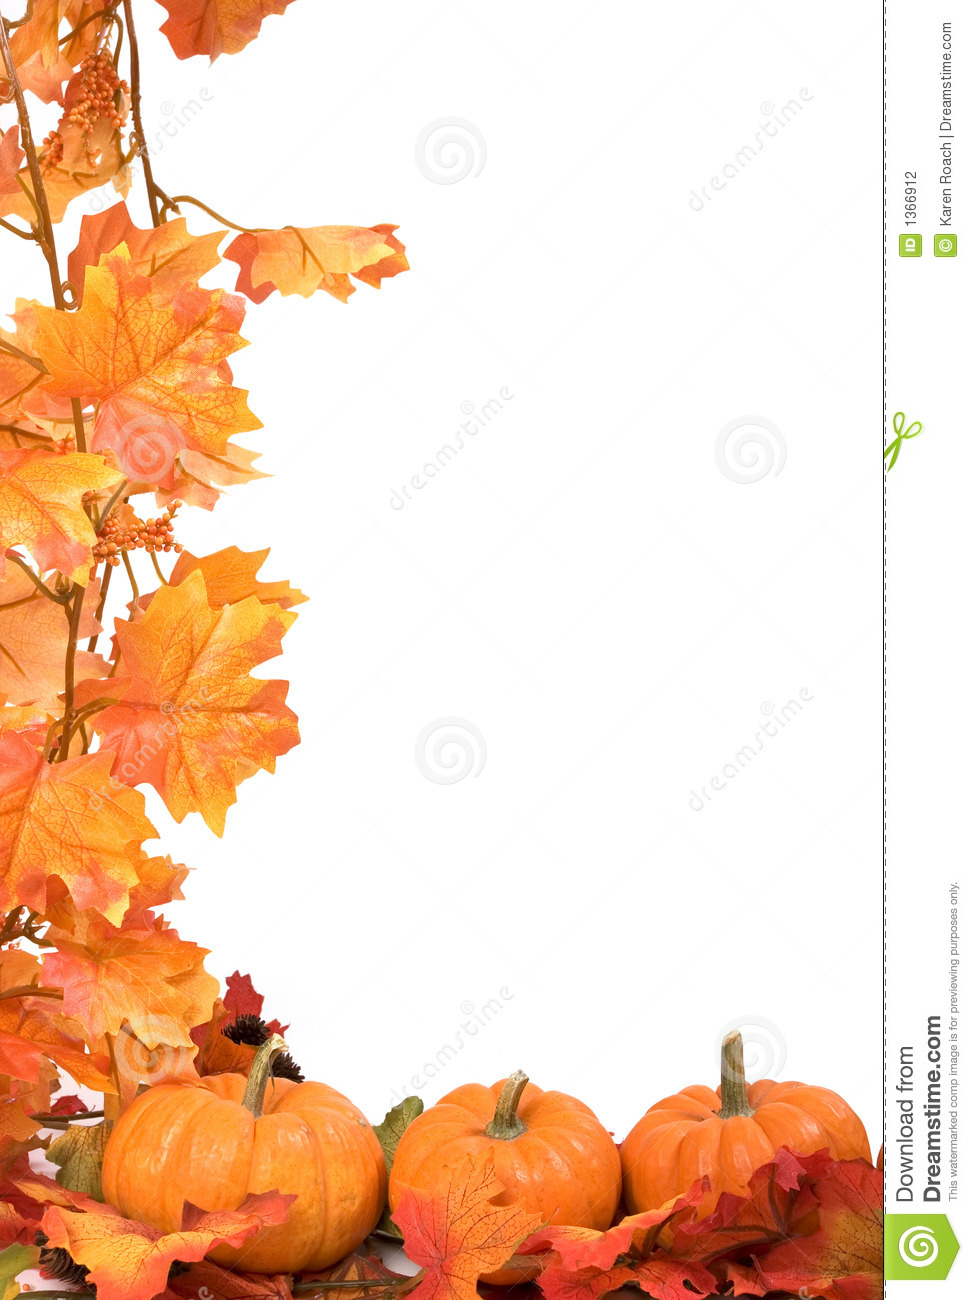 Pumpkins With Fall Leaves Stock Photography - Image: 1366912